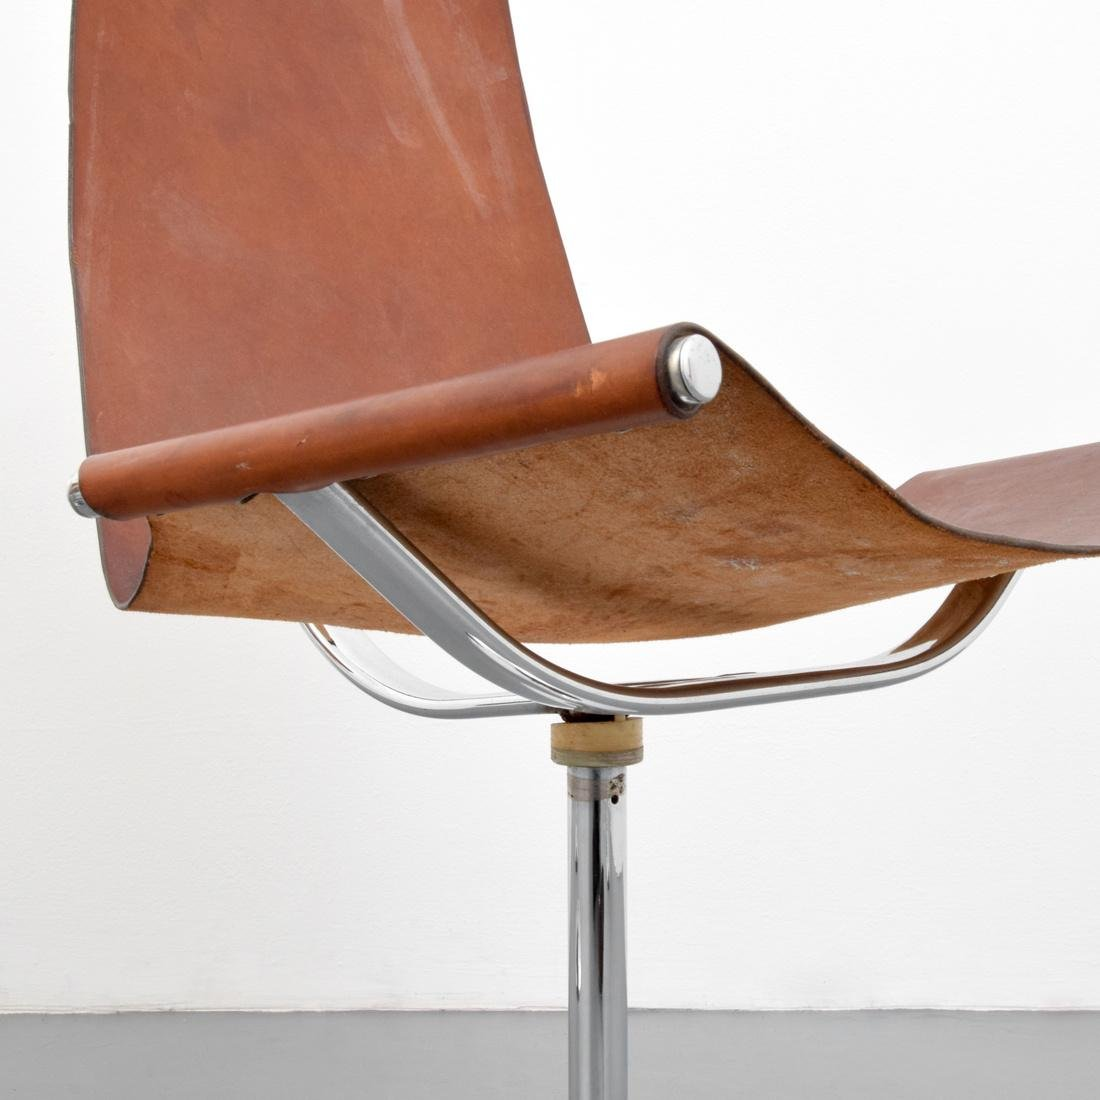 4 Leather Sling Chairs, Manner of Laverne - 4